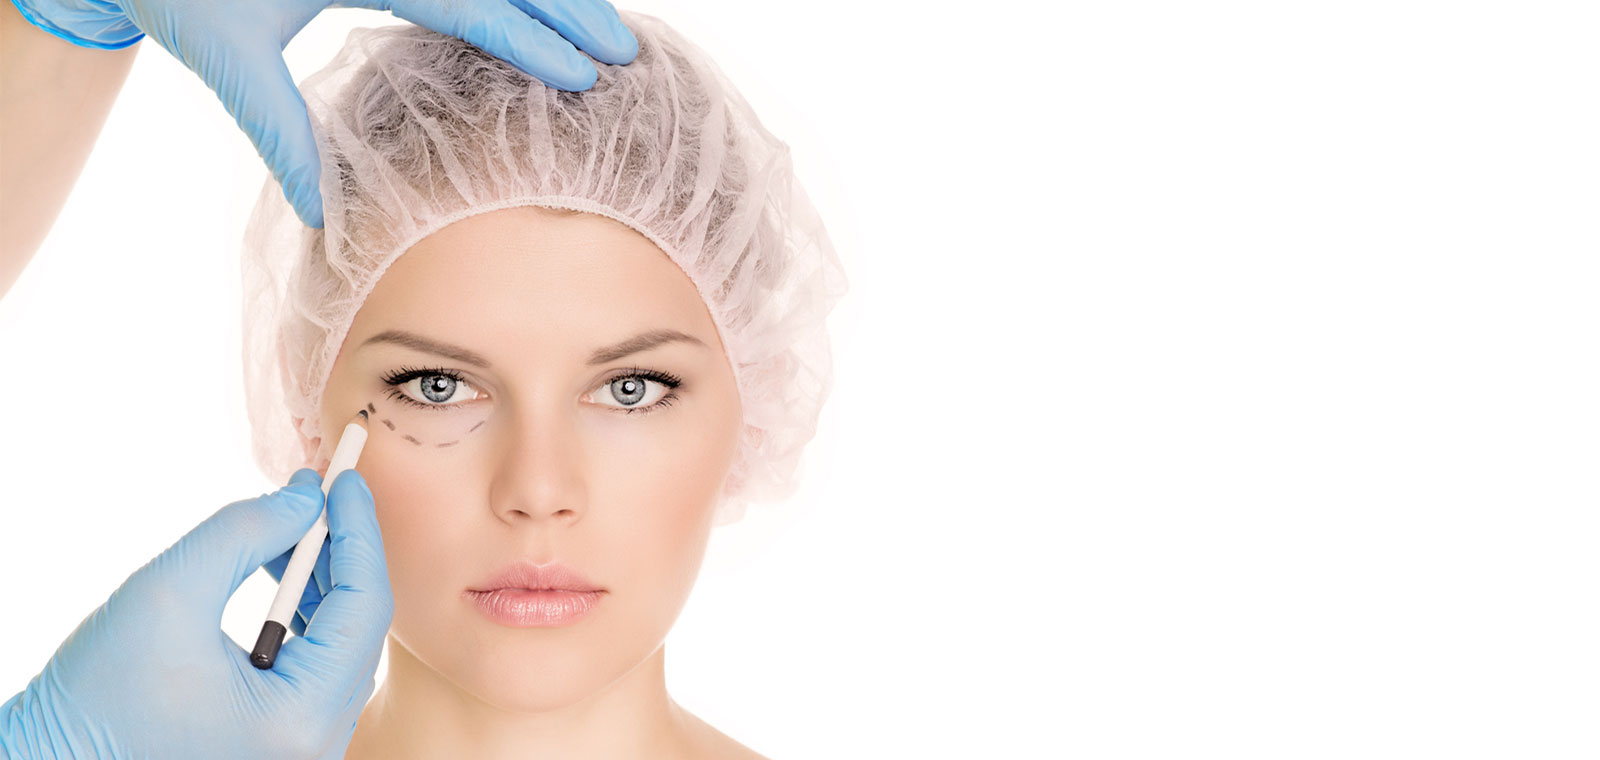 FACIAL SURGICAL PROCEDURES